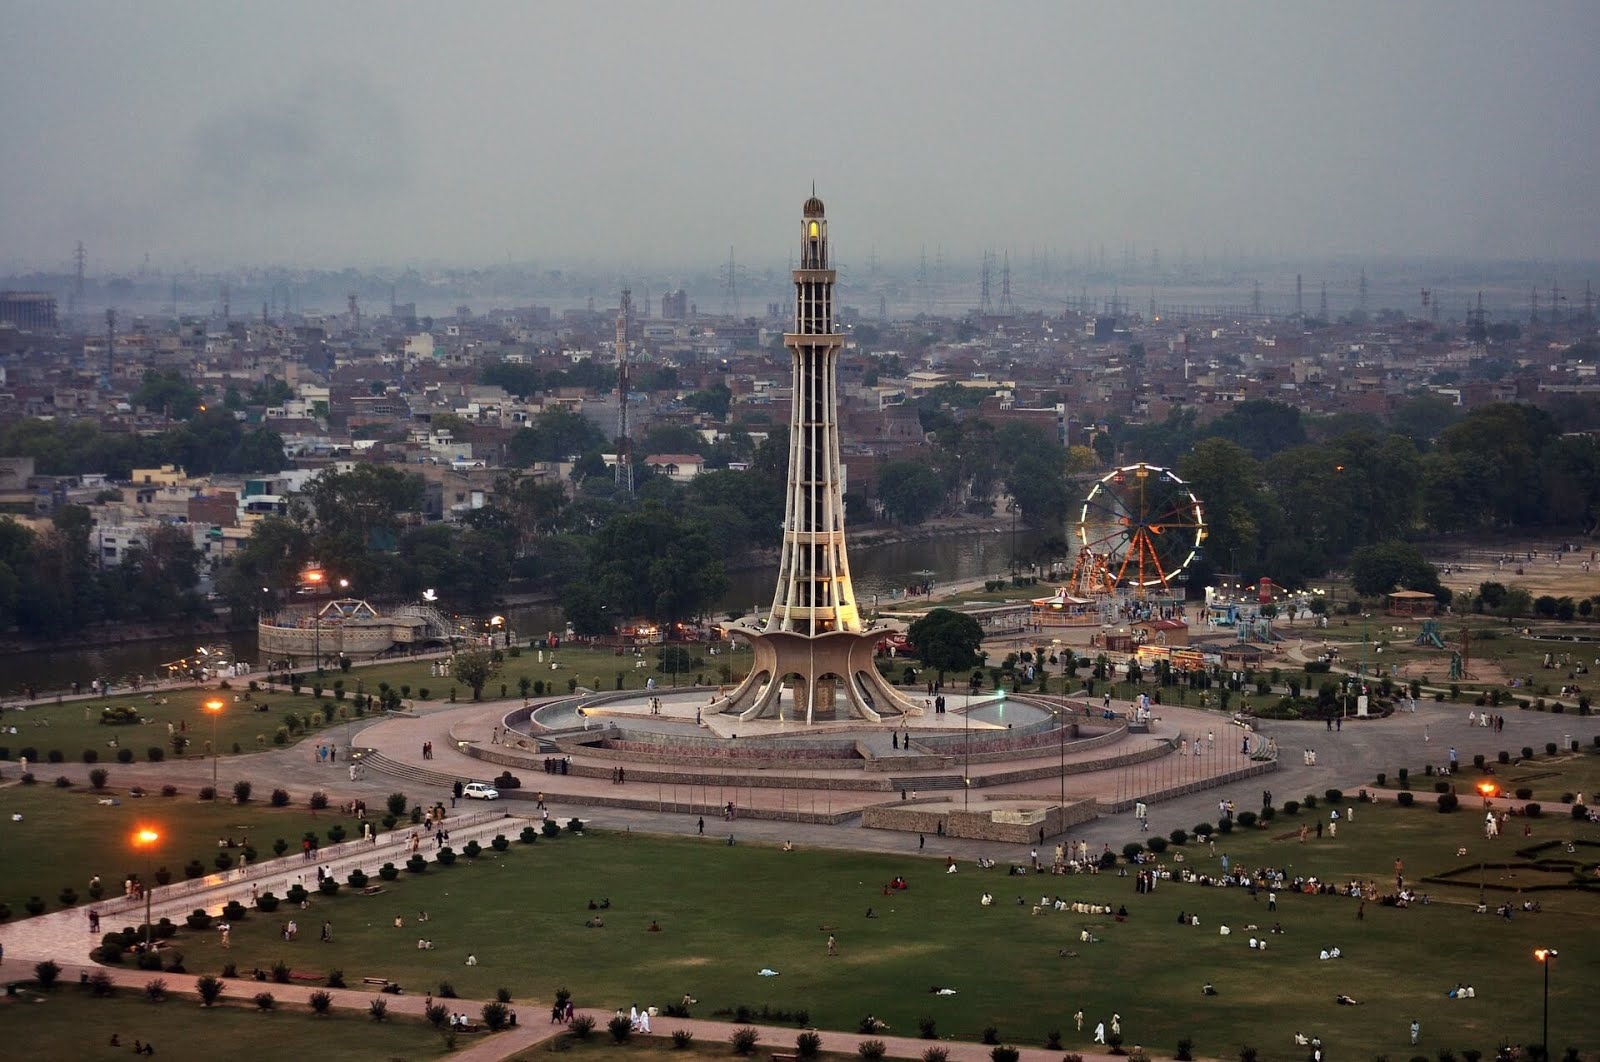 Badshahi Mosque, Best in Pakistan, Best Places in Lahore For Photography, Best Places to Visit in Lahore, Eiffel Tower Replica, Lahore, Lahore Fort, lahore zoo, Minar-e-Pakistan, pakistan, travel guide, pakistan travel guide